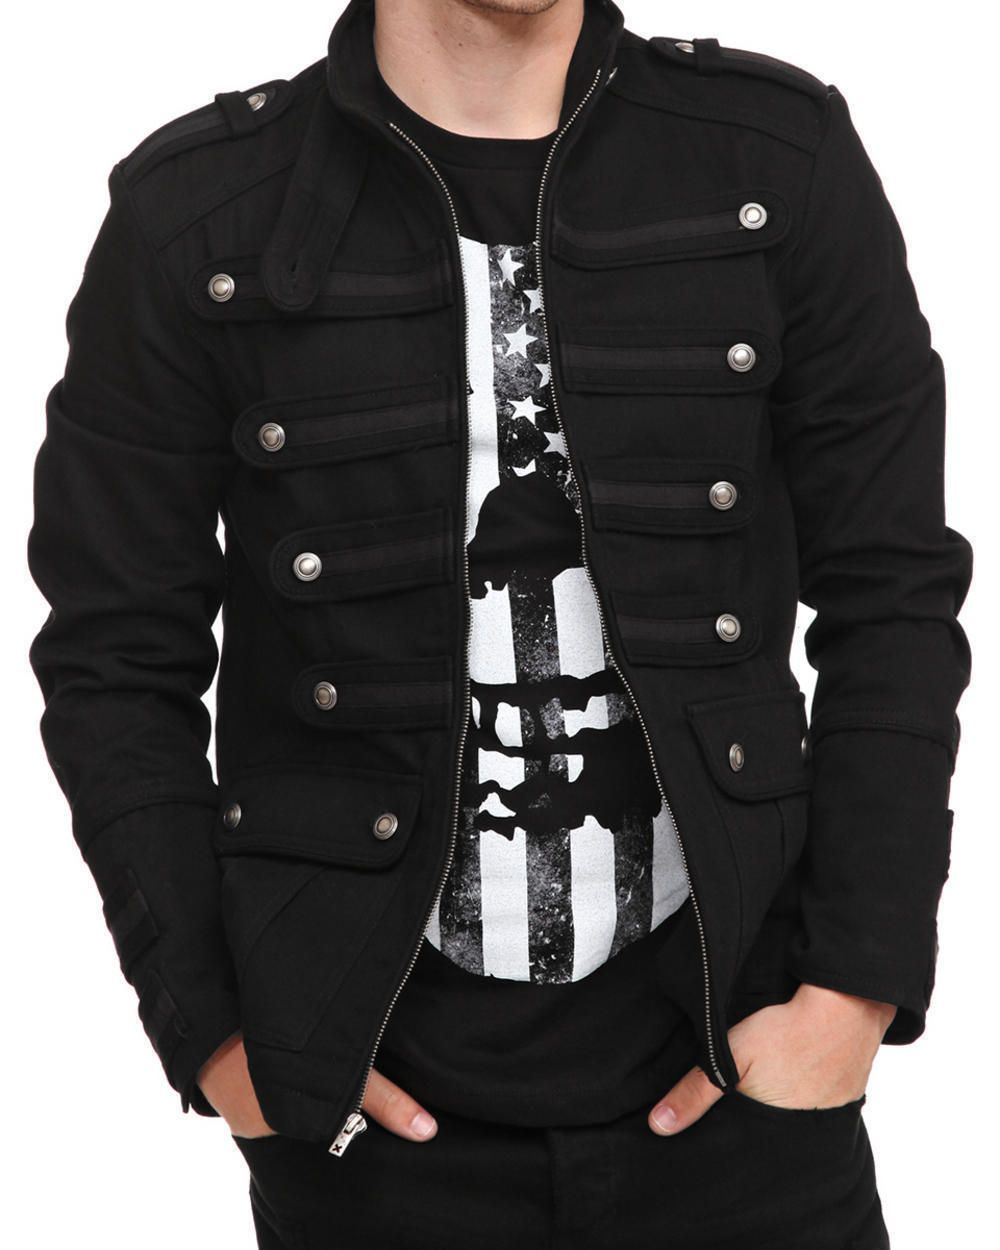 Men s Unique Gothic Steampunk Black Parade Military Marching Band Drummer  Jacket Goth Steampunk Vintage Pea Coat Gothic Military Jacket 942095931